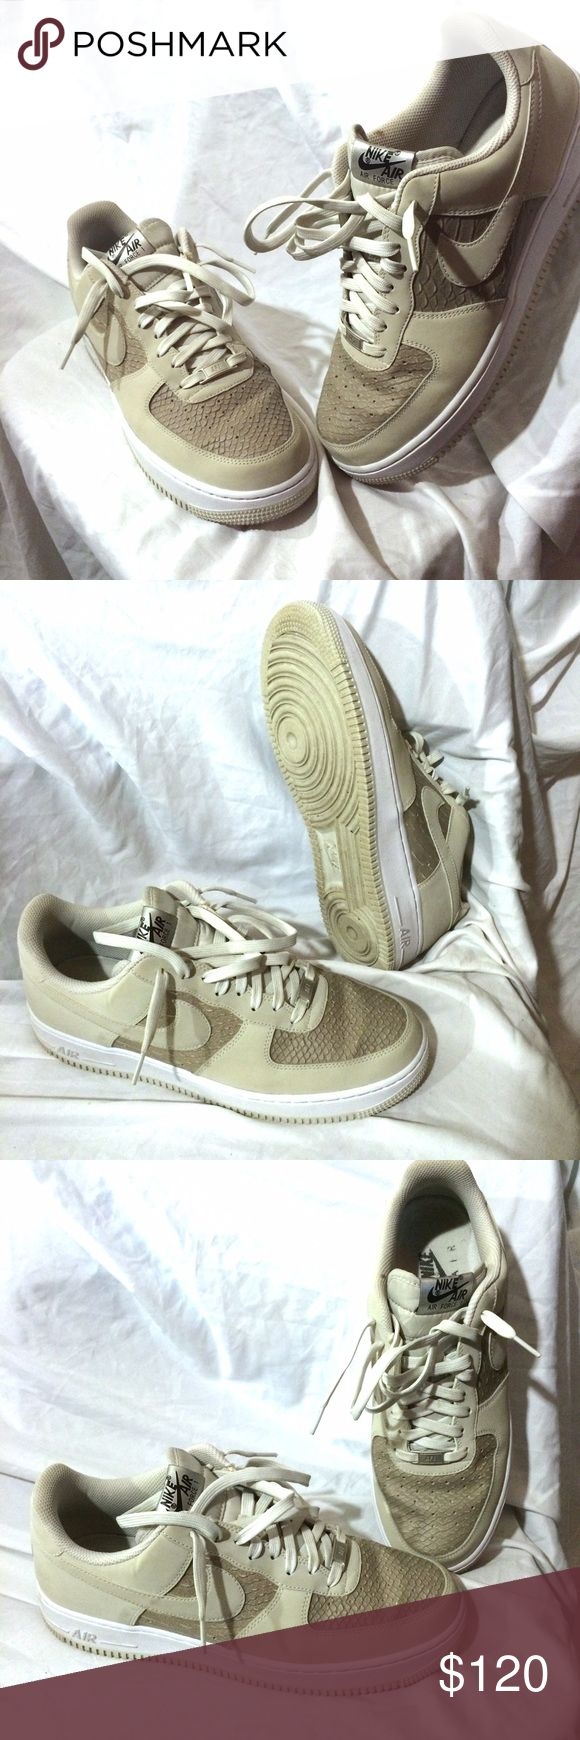 EXCLUSIVE!!! NIKE Air Force Ones Shoes are in EXCELLENT CONDITION!!! GREAT DEAL!!! Nike Shoes Athletic Shoes